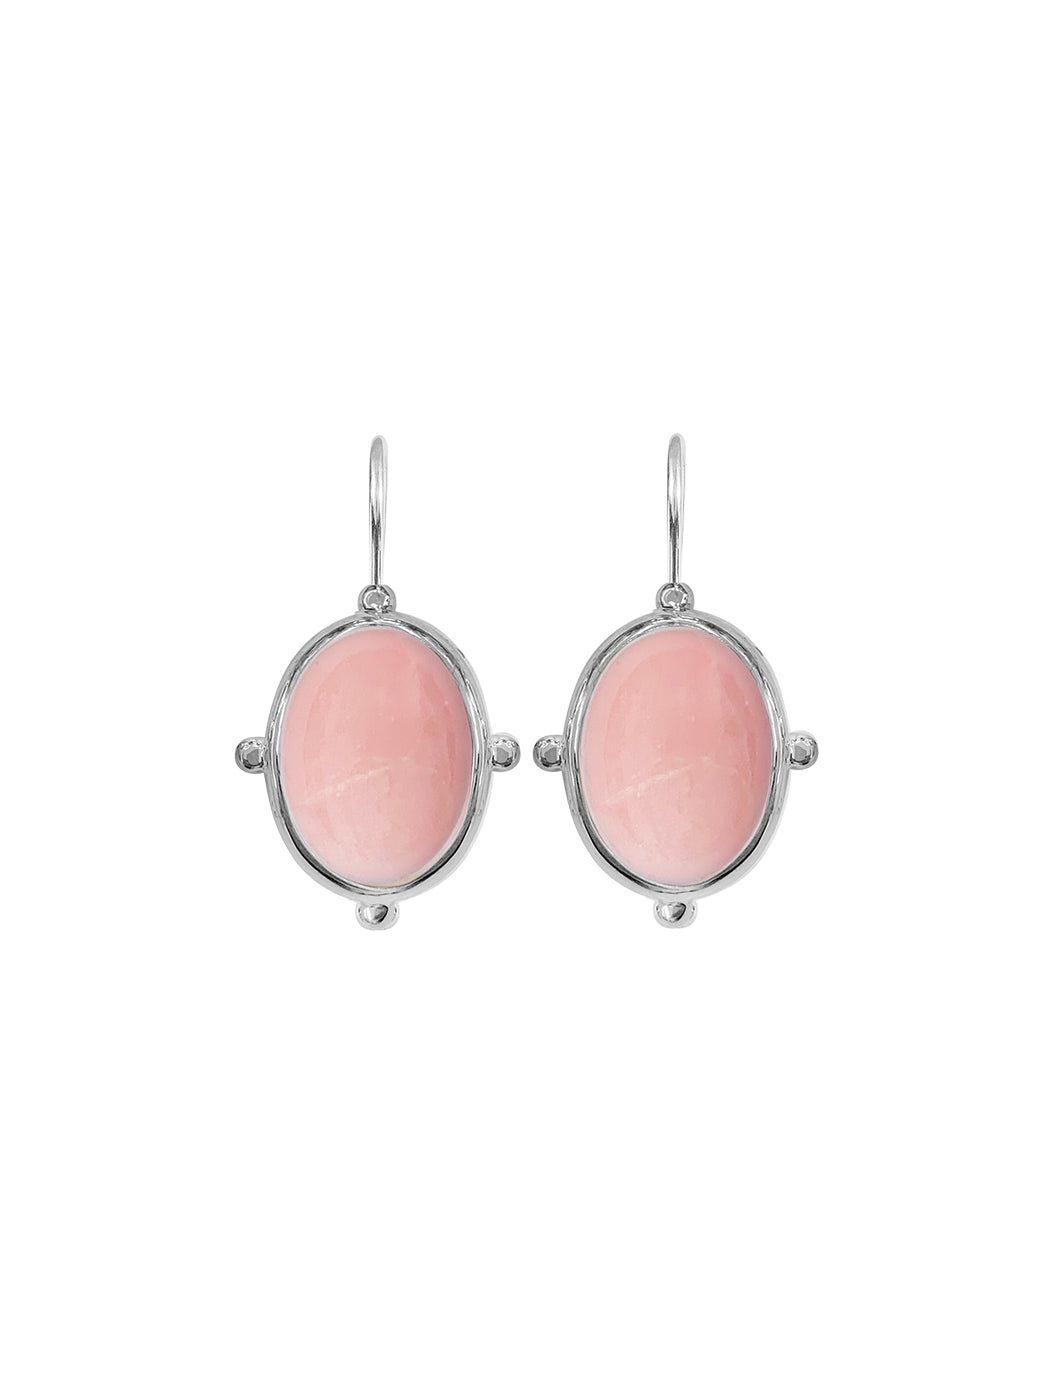 Fiorina Jewellery Oval Button Earrings Pink Opal